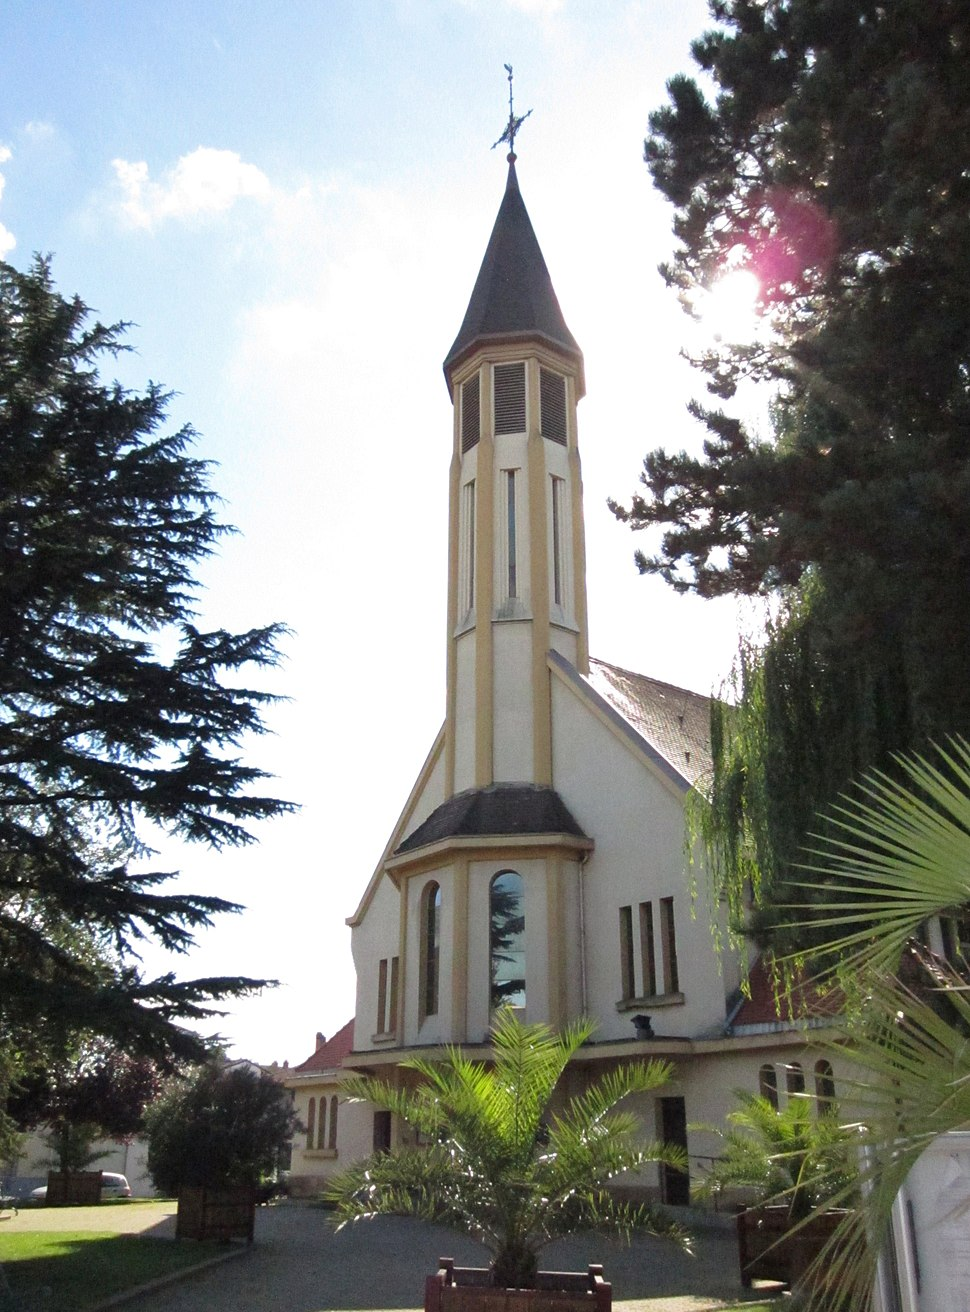 The church in Amnéville